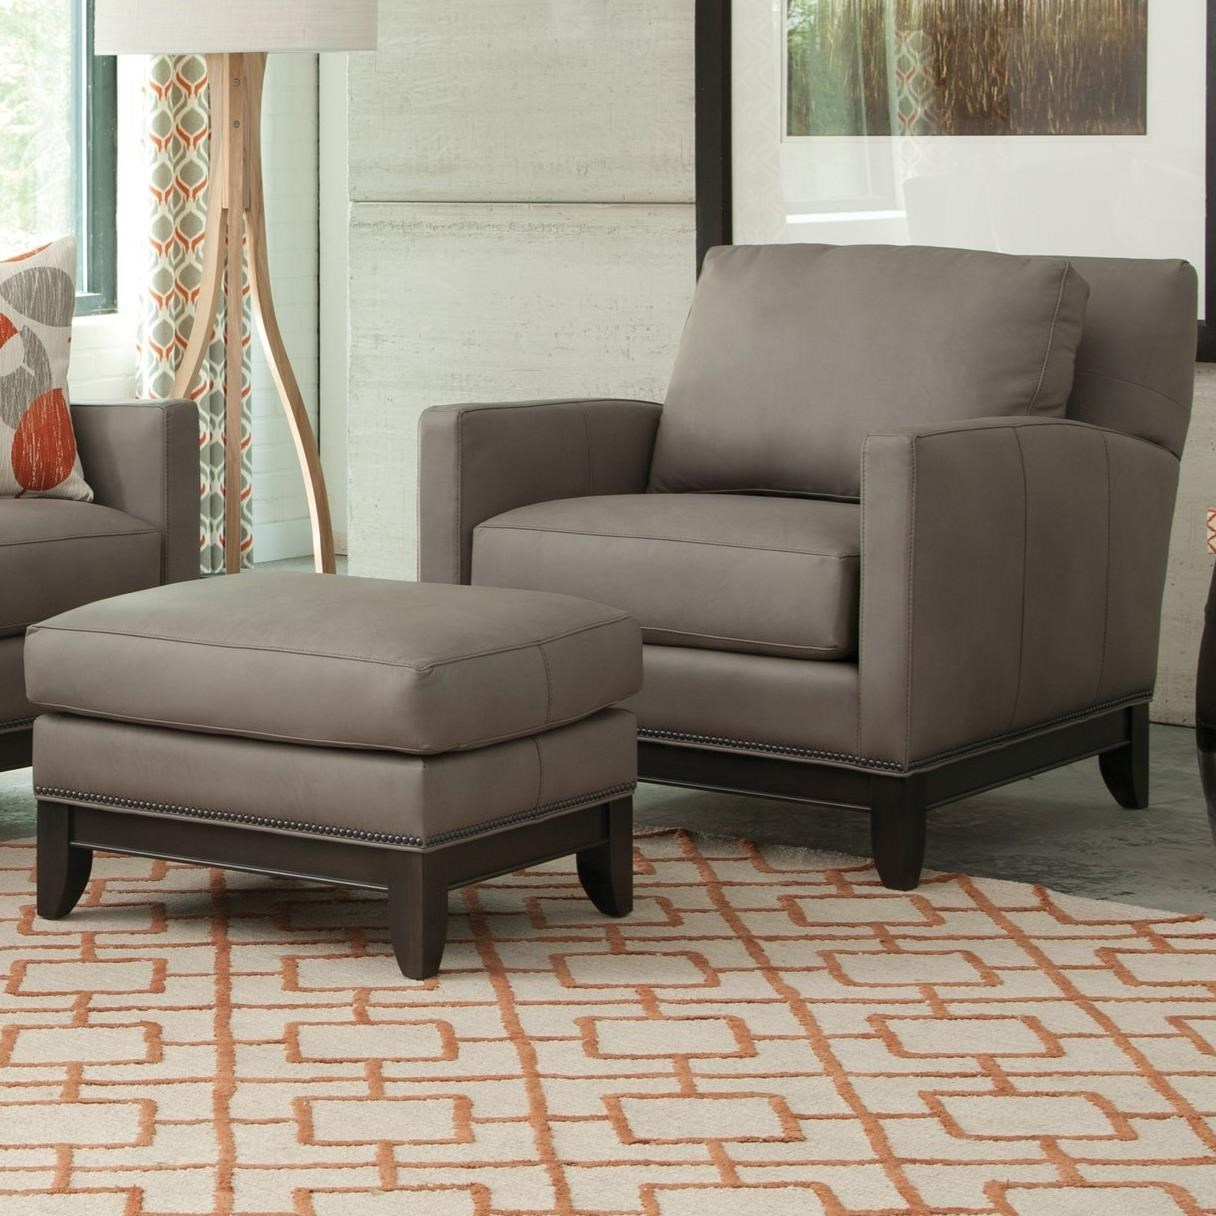 238 Chair and Ottoman Set by Smith Brothers at Mueller Furniture